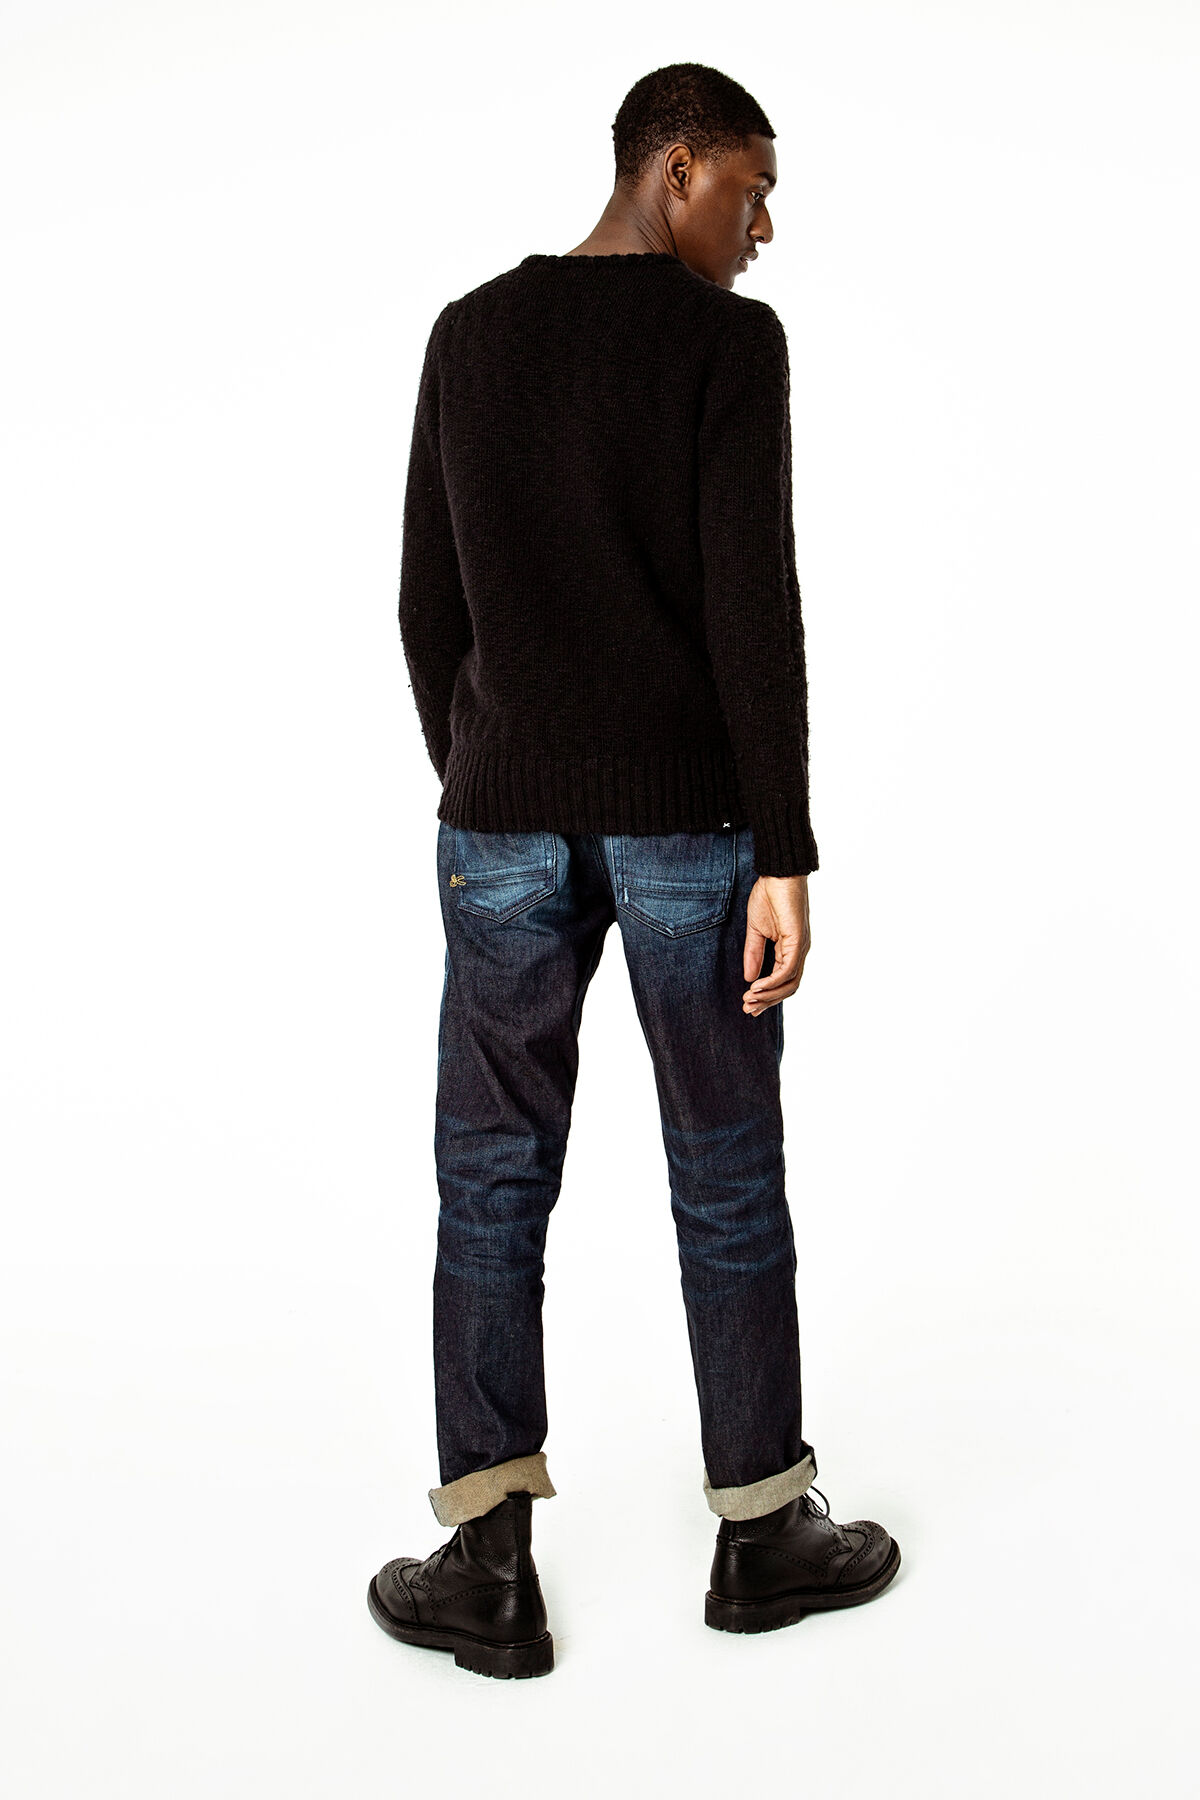 FORGE Natural Fade Indigo Denim - Relaxed Fit